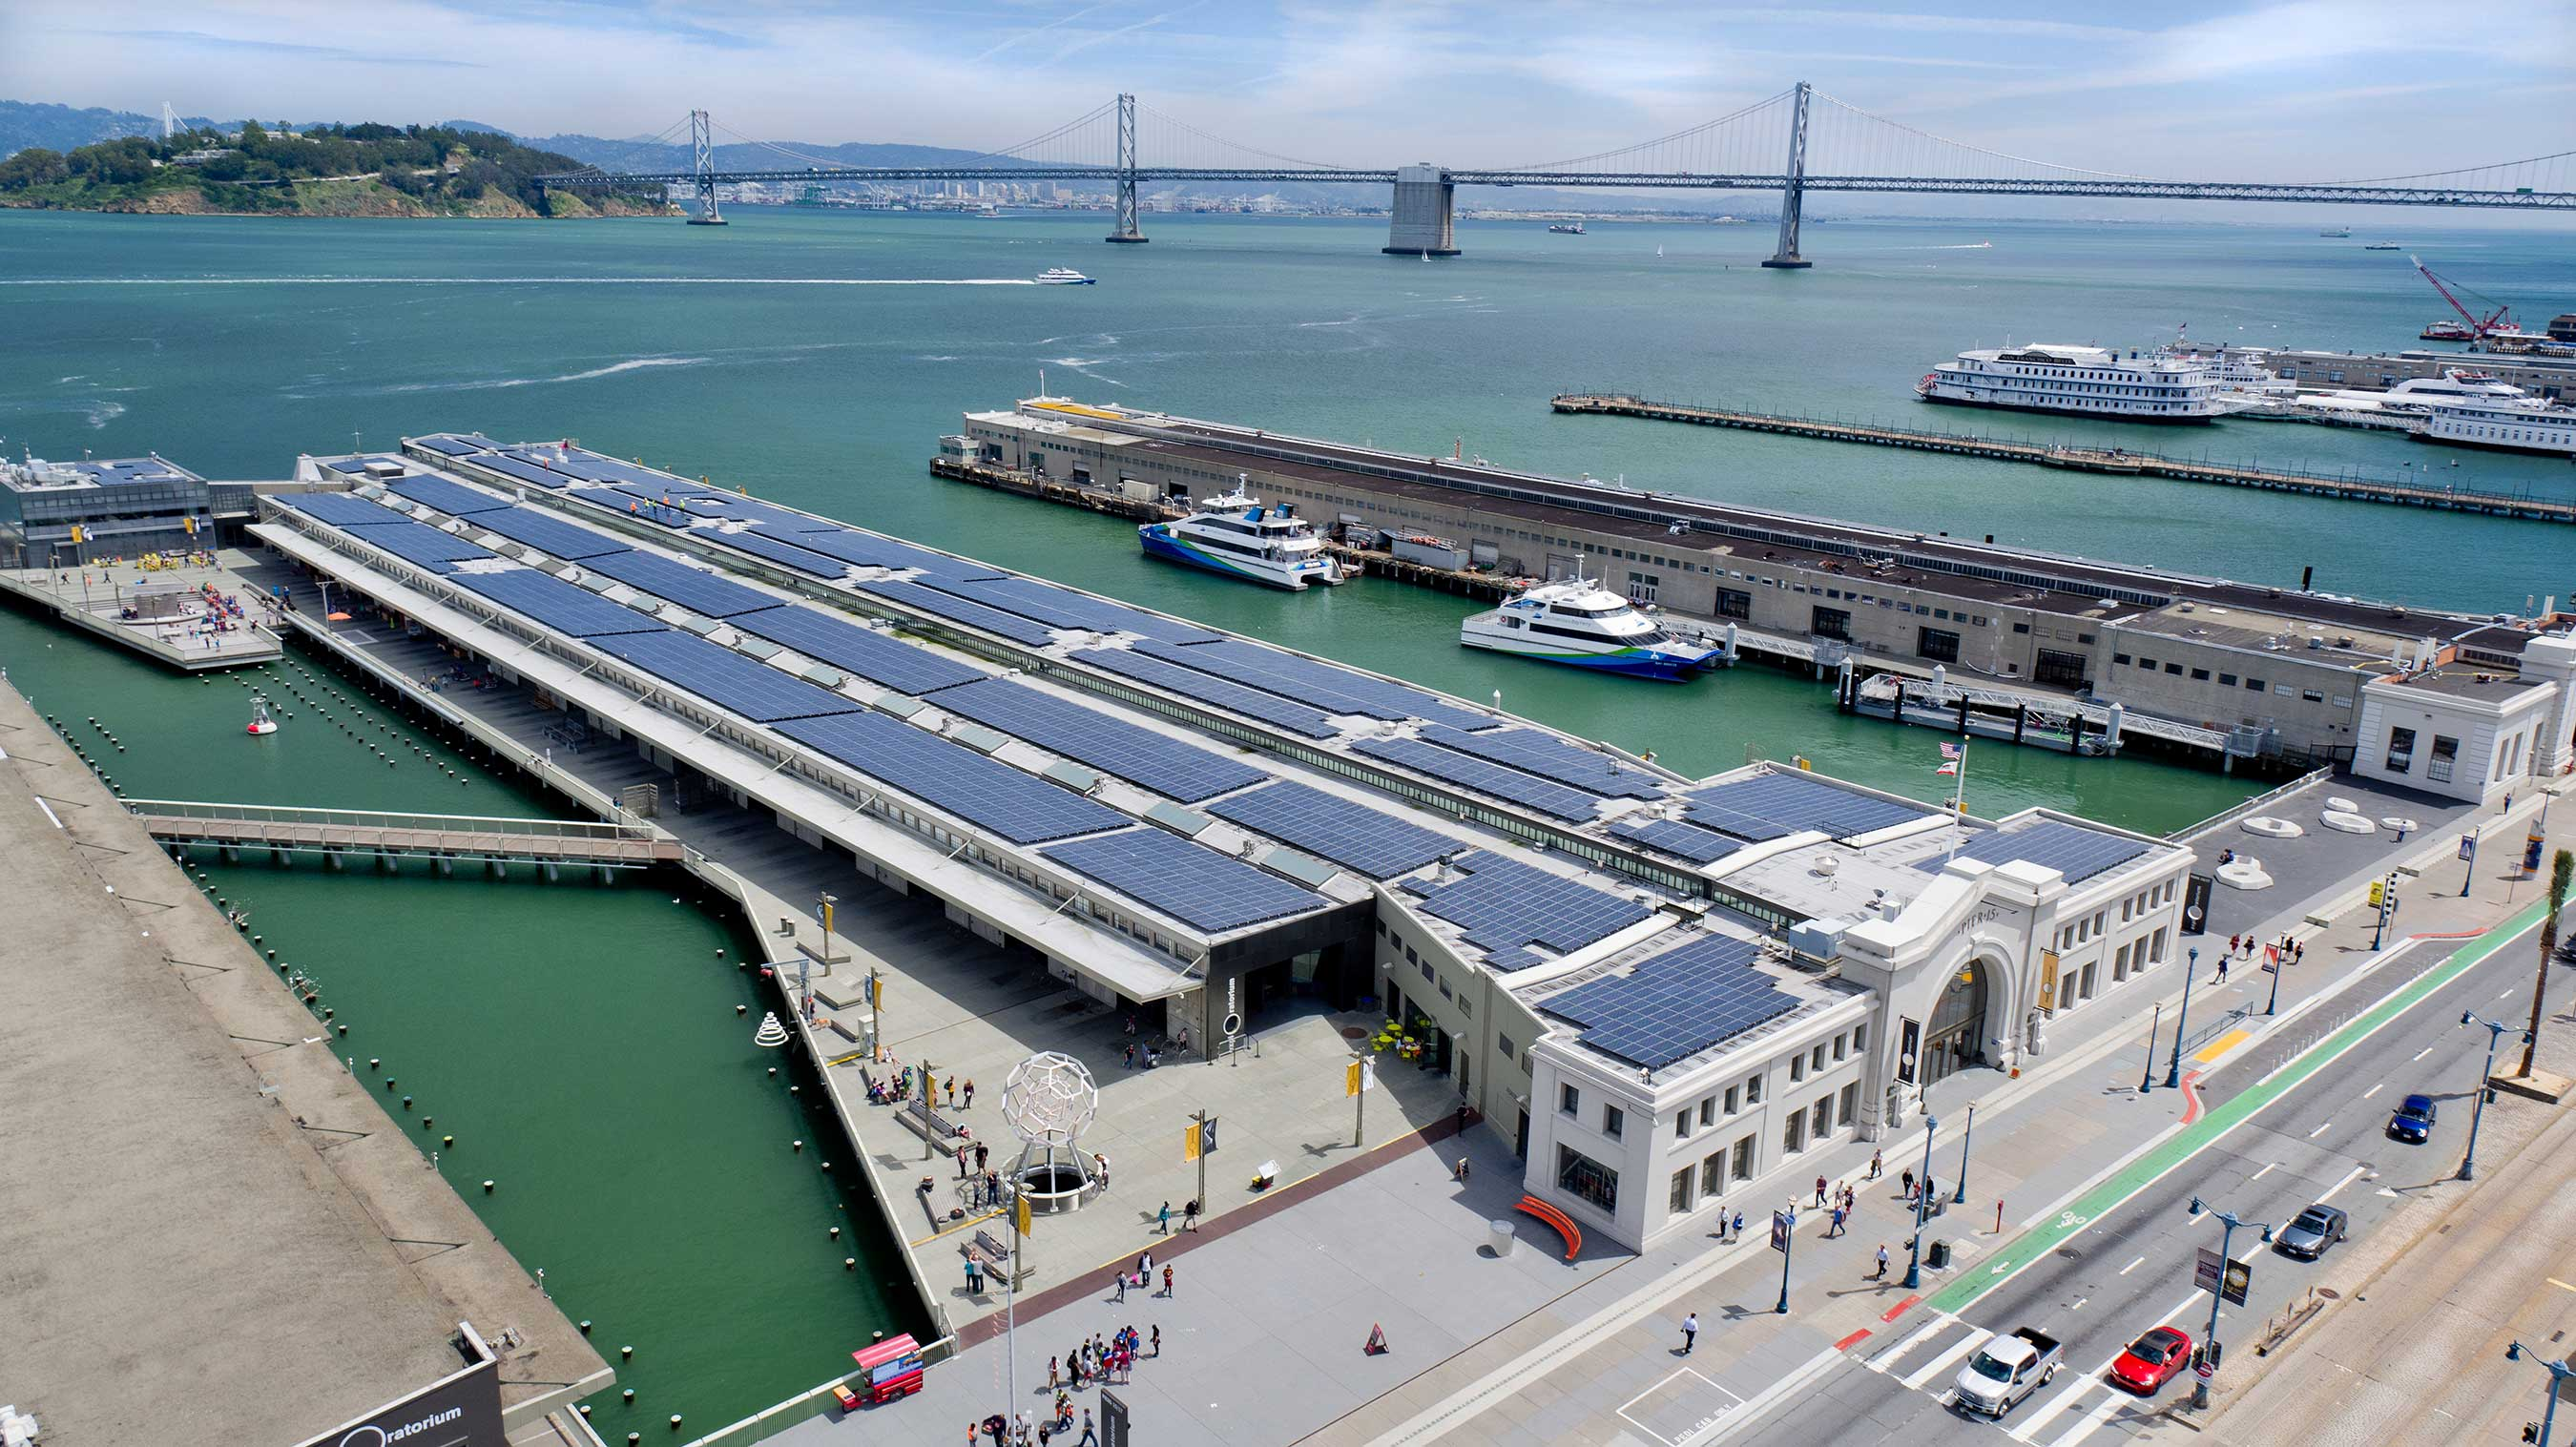 The Exploratorium's sustainable home in San Francisco, California, is certified LEED Platinum® and features a 1.3-megawatt SunPower system to meet about 80 percent of its electricity needs.